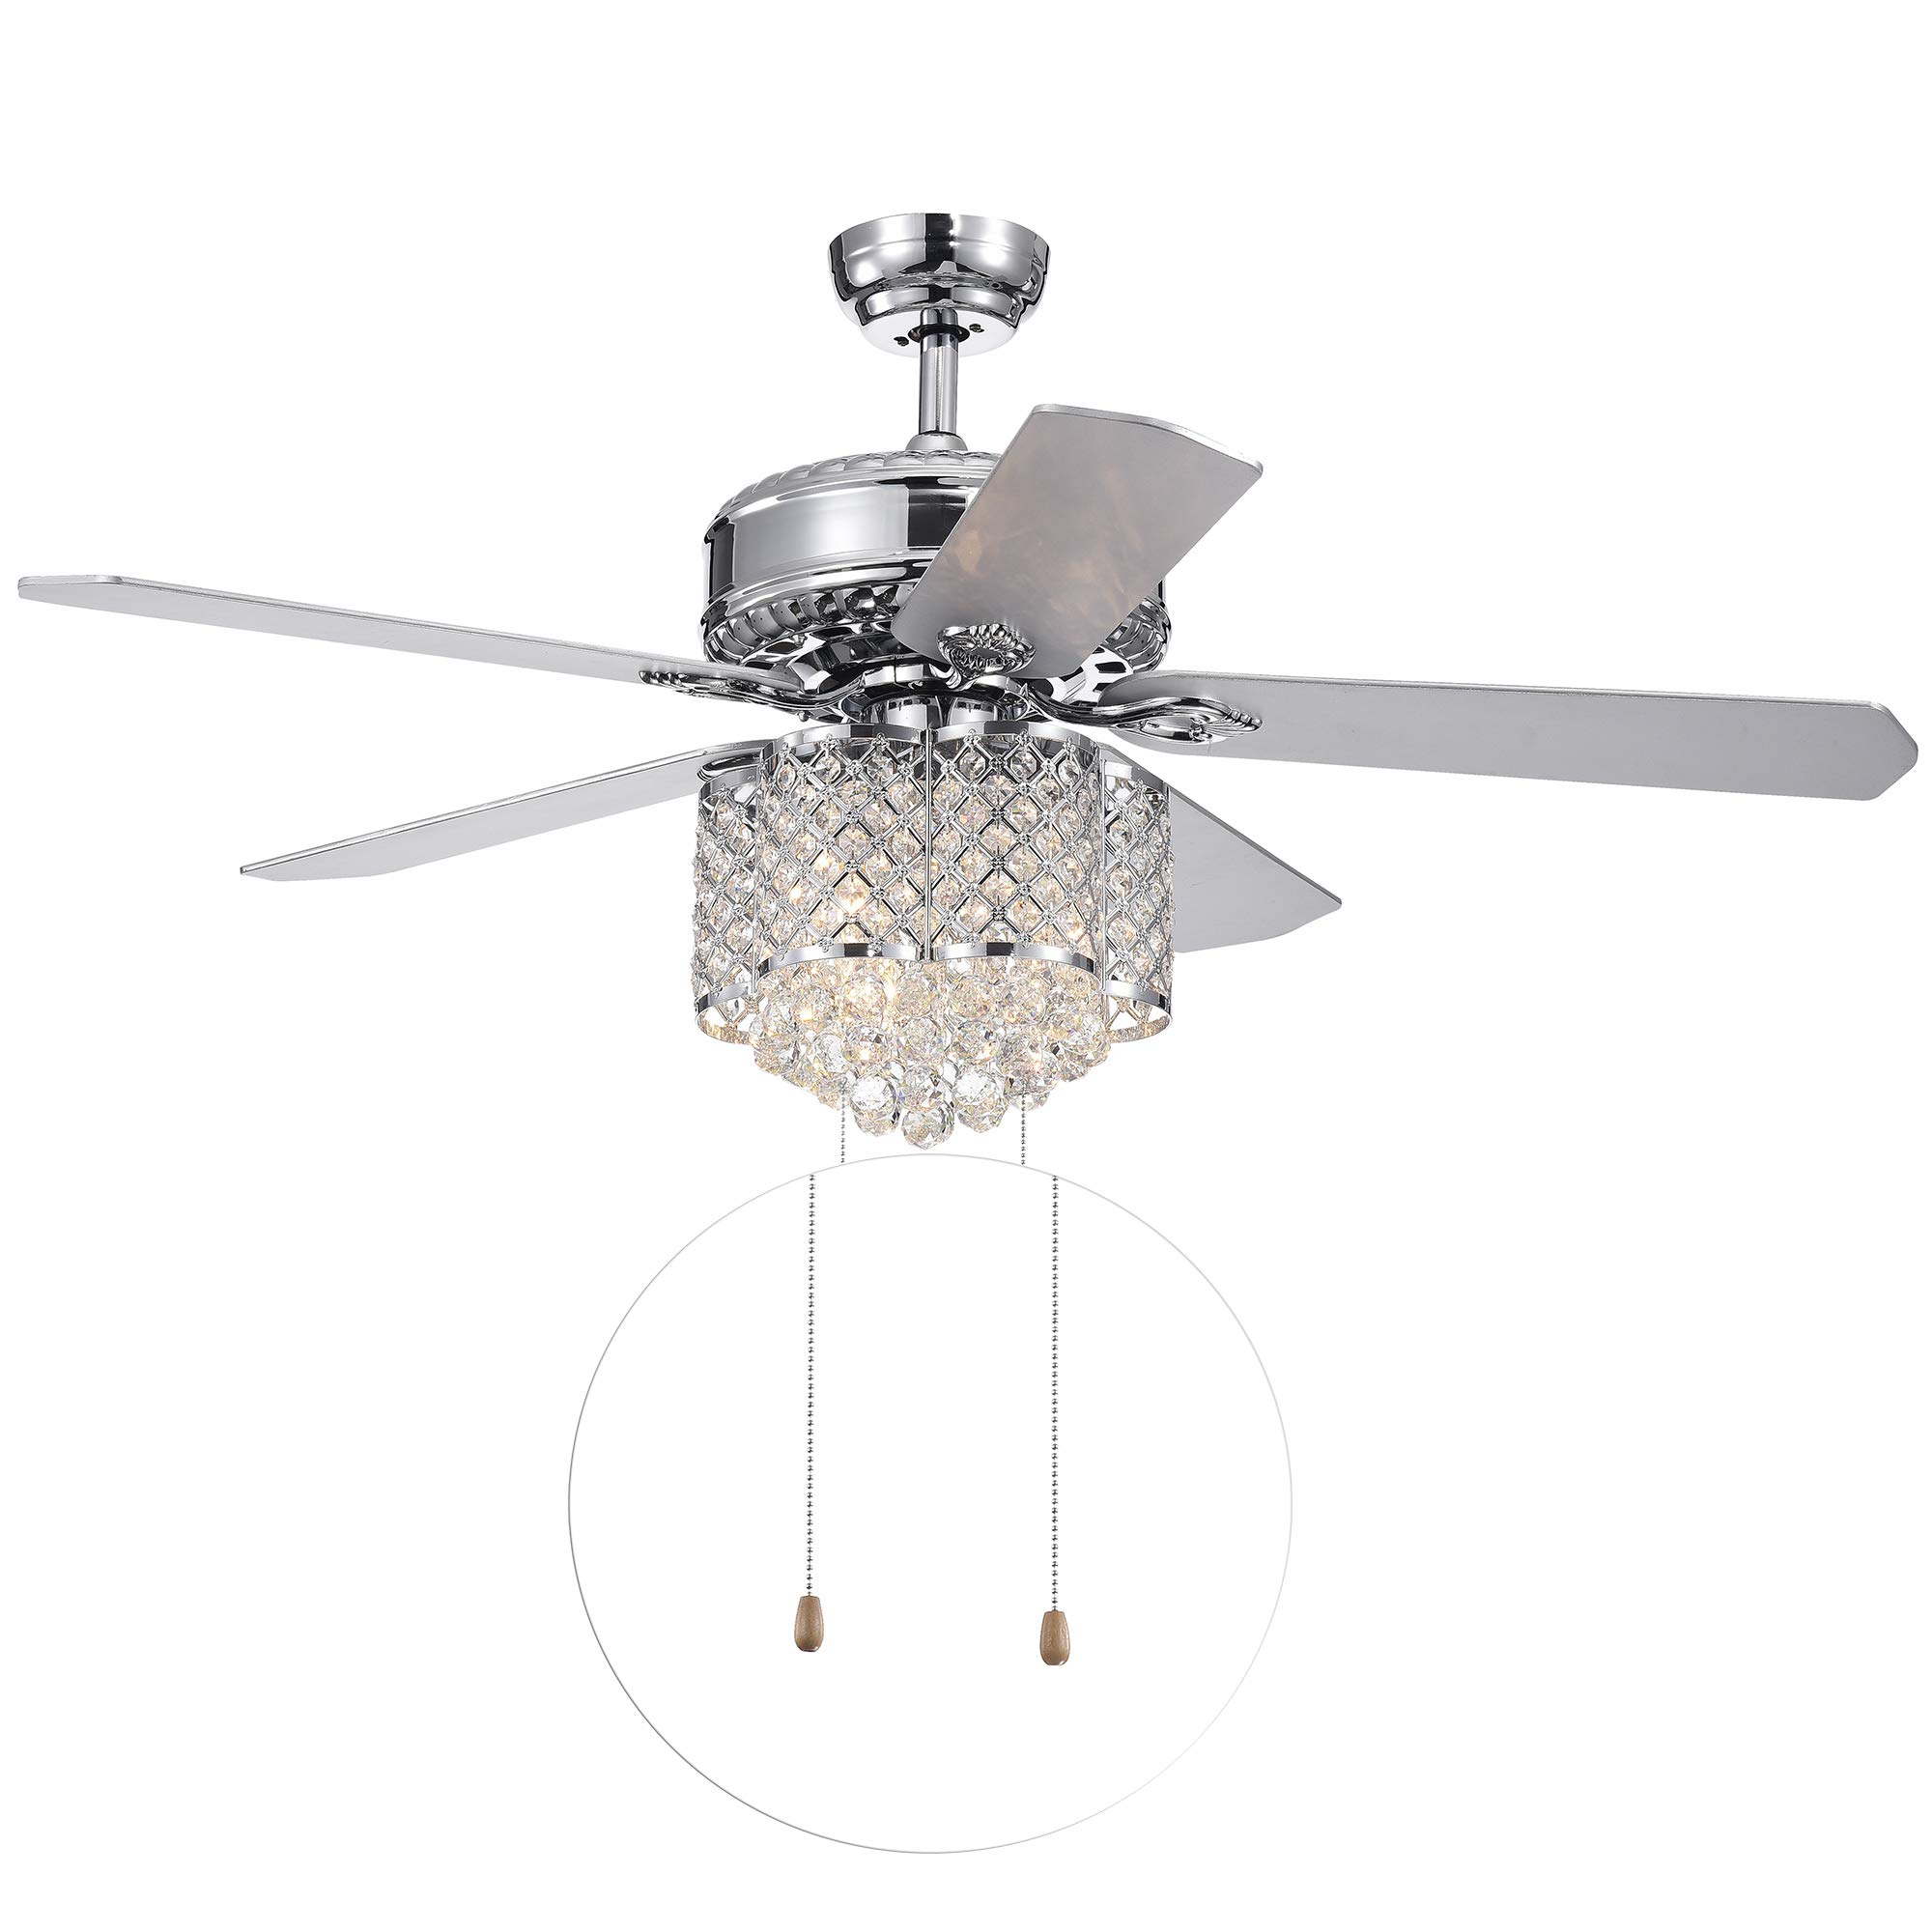 Home Accessories CFL-8316CH Deidor 5-Blade 52-inch Chrome 3-Light Crystal Chandelier (Remote Controlled & 2 Color Option) Ceiling Fan by Home Accessories